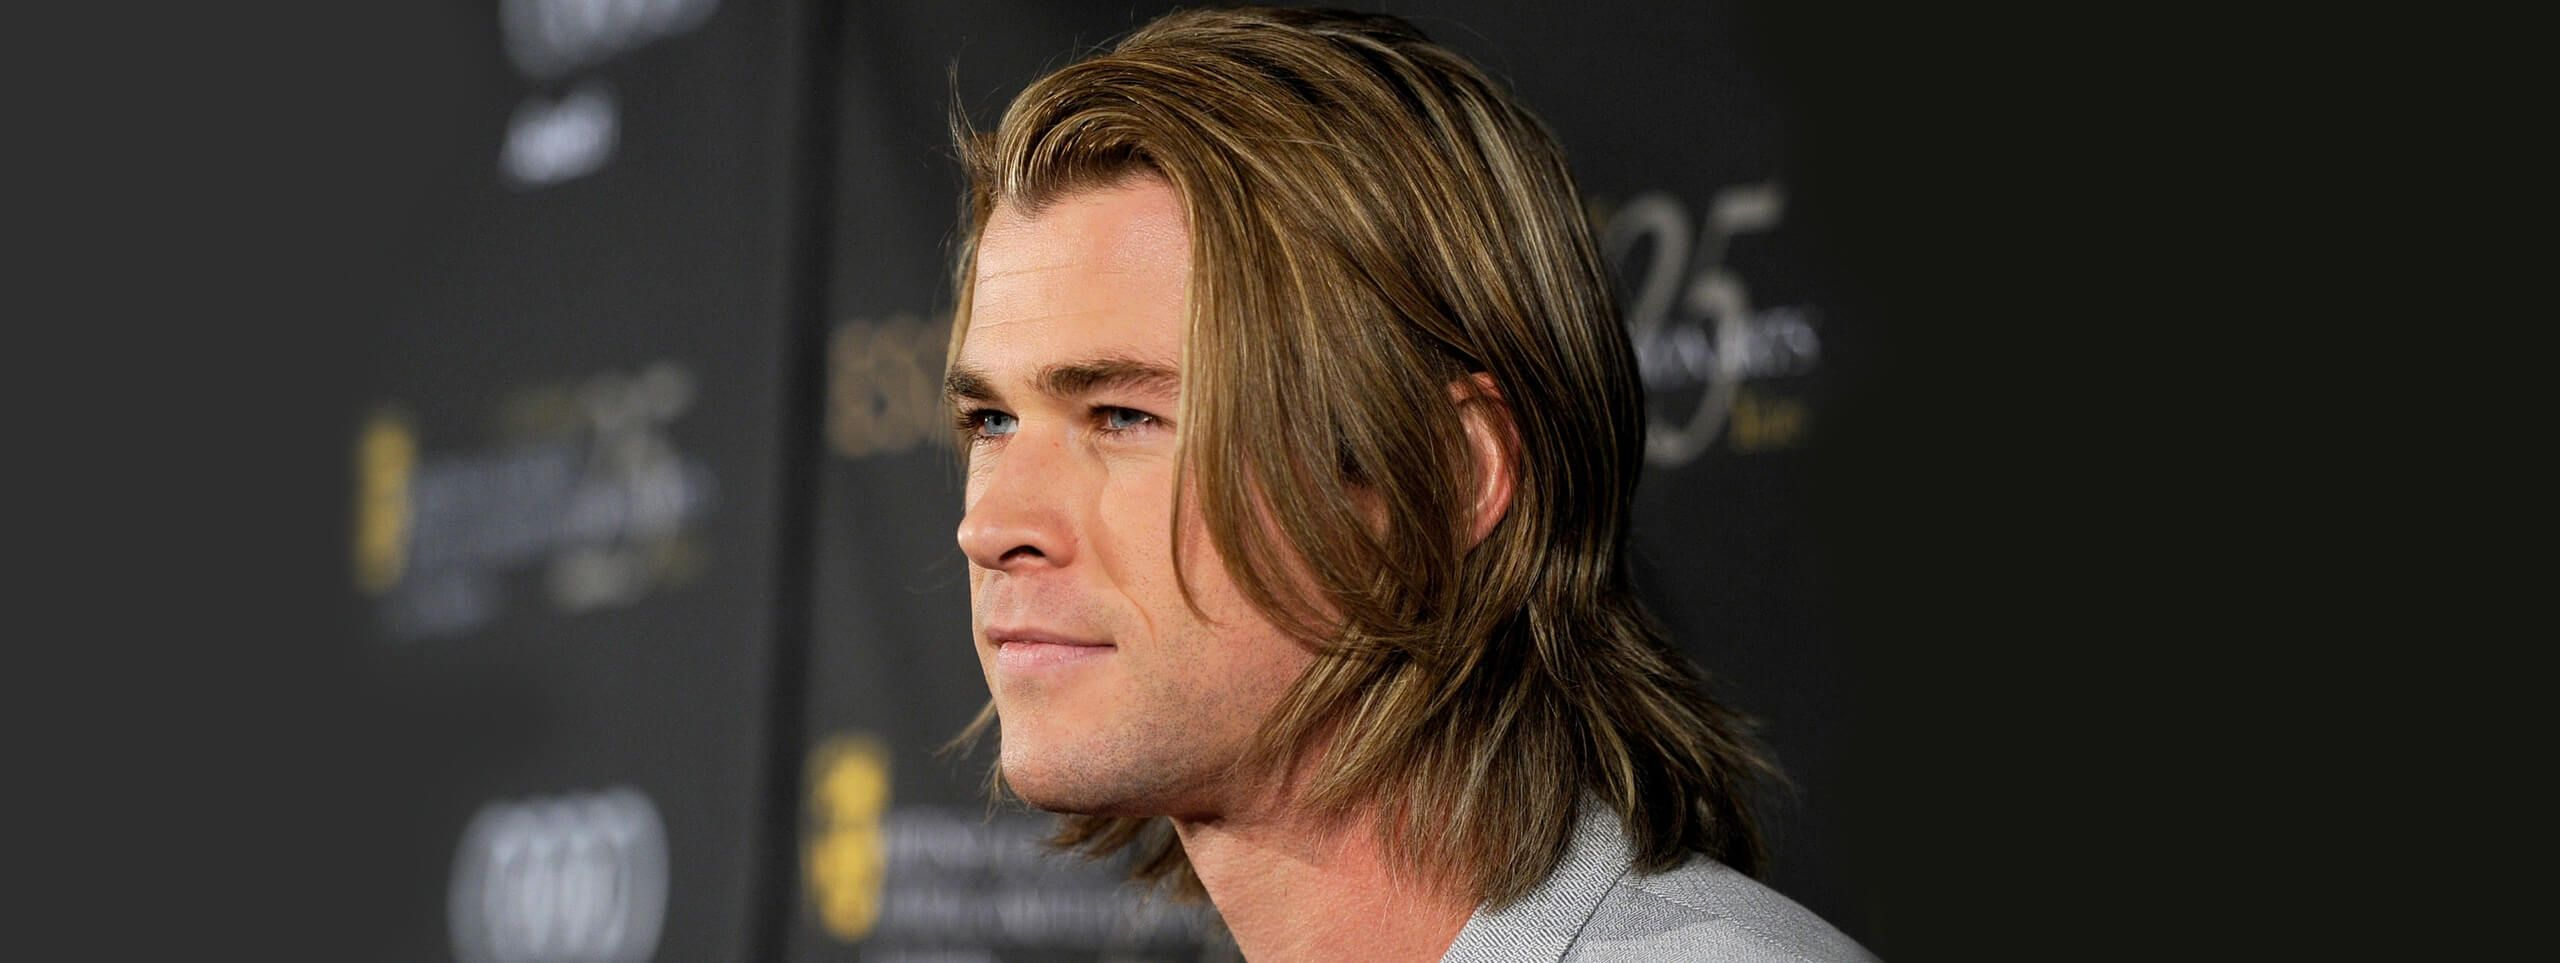 Chris Hemsworth with long hairstyle